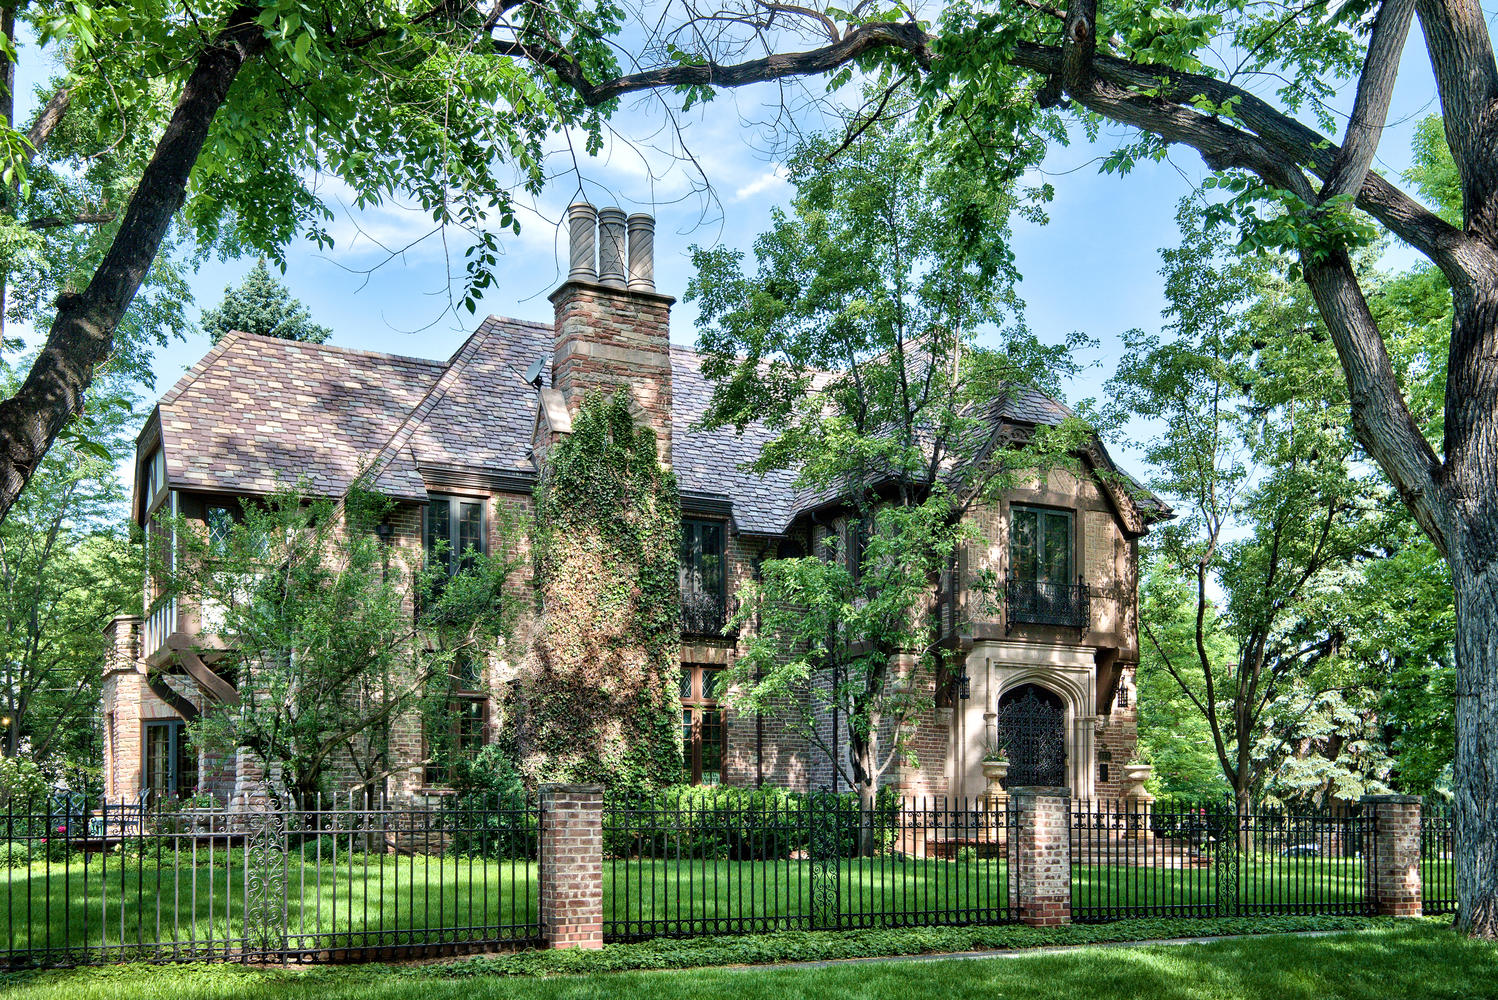 一戸建て のために 売買 アット Spectacular Tudor on a Beautiful Half Acre in Historic Denver Country Club 177 Humboldt Street Denver, コロラド 80218 アメリカ合衆国